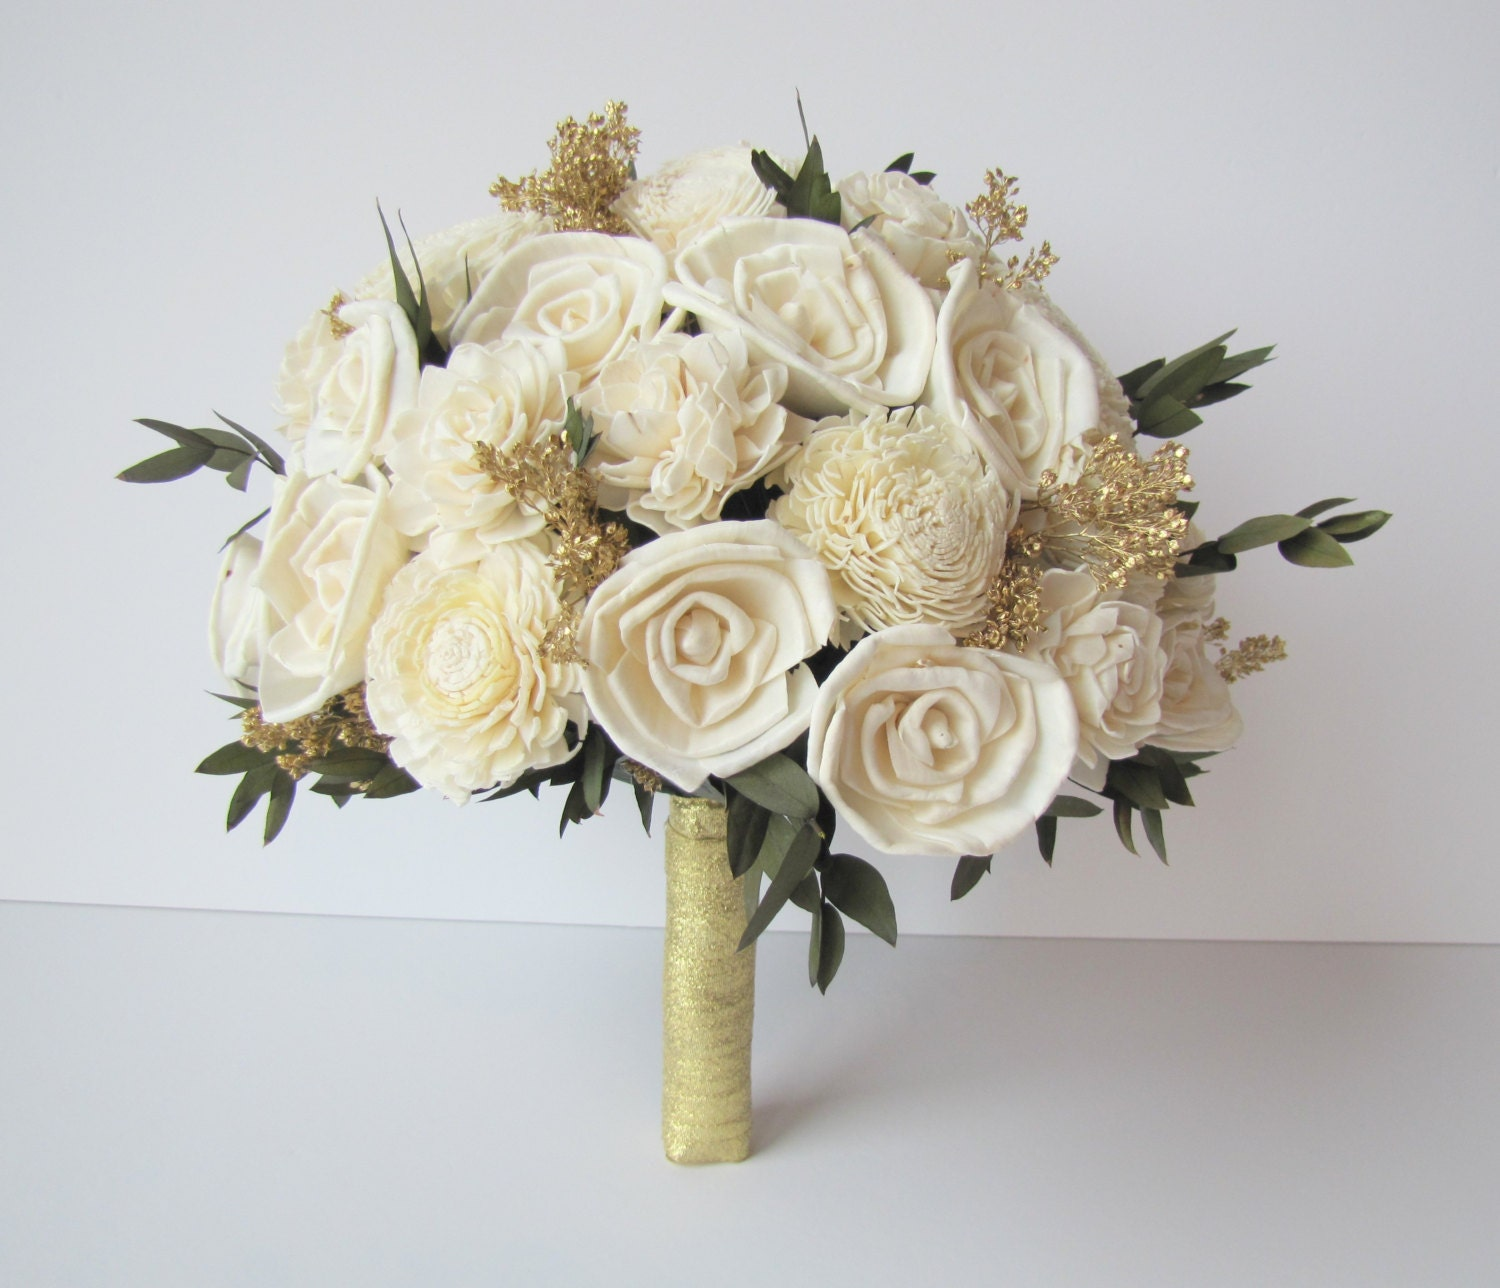 Ivory and gold bridal bouquet brides flowers bridal bouquet ivory and gold bridal bouquet brides flowers bridal bouquet keepsake wedding bouquet large bridal bouquet new years wedding izmirmasajfo